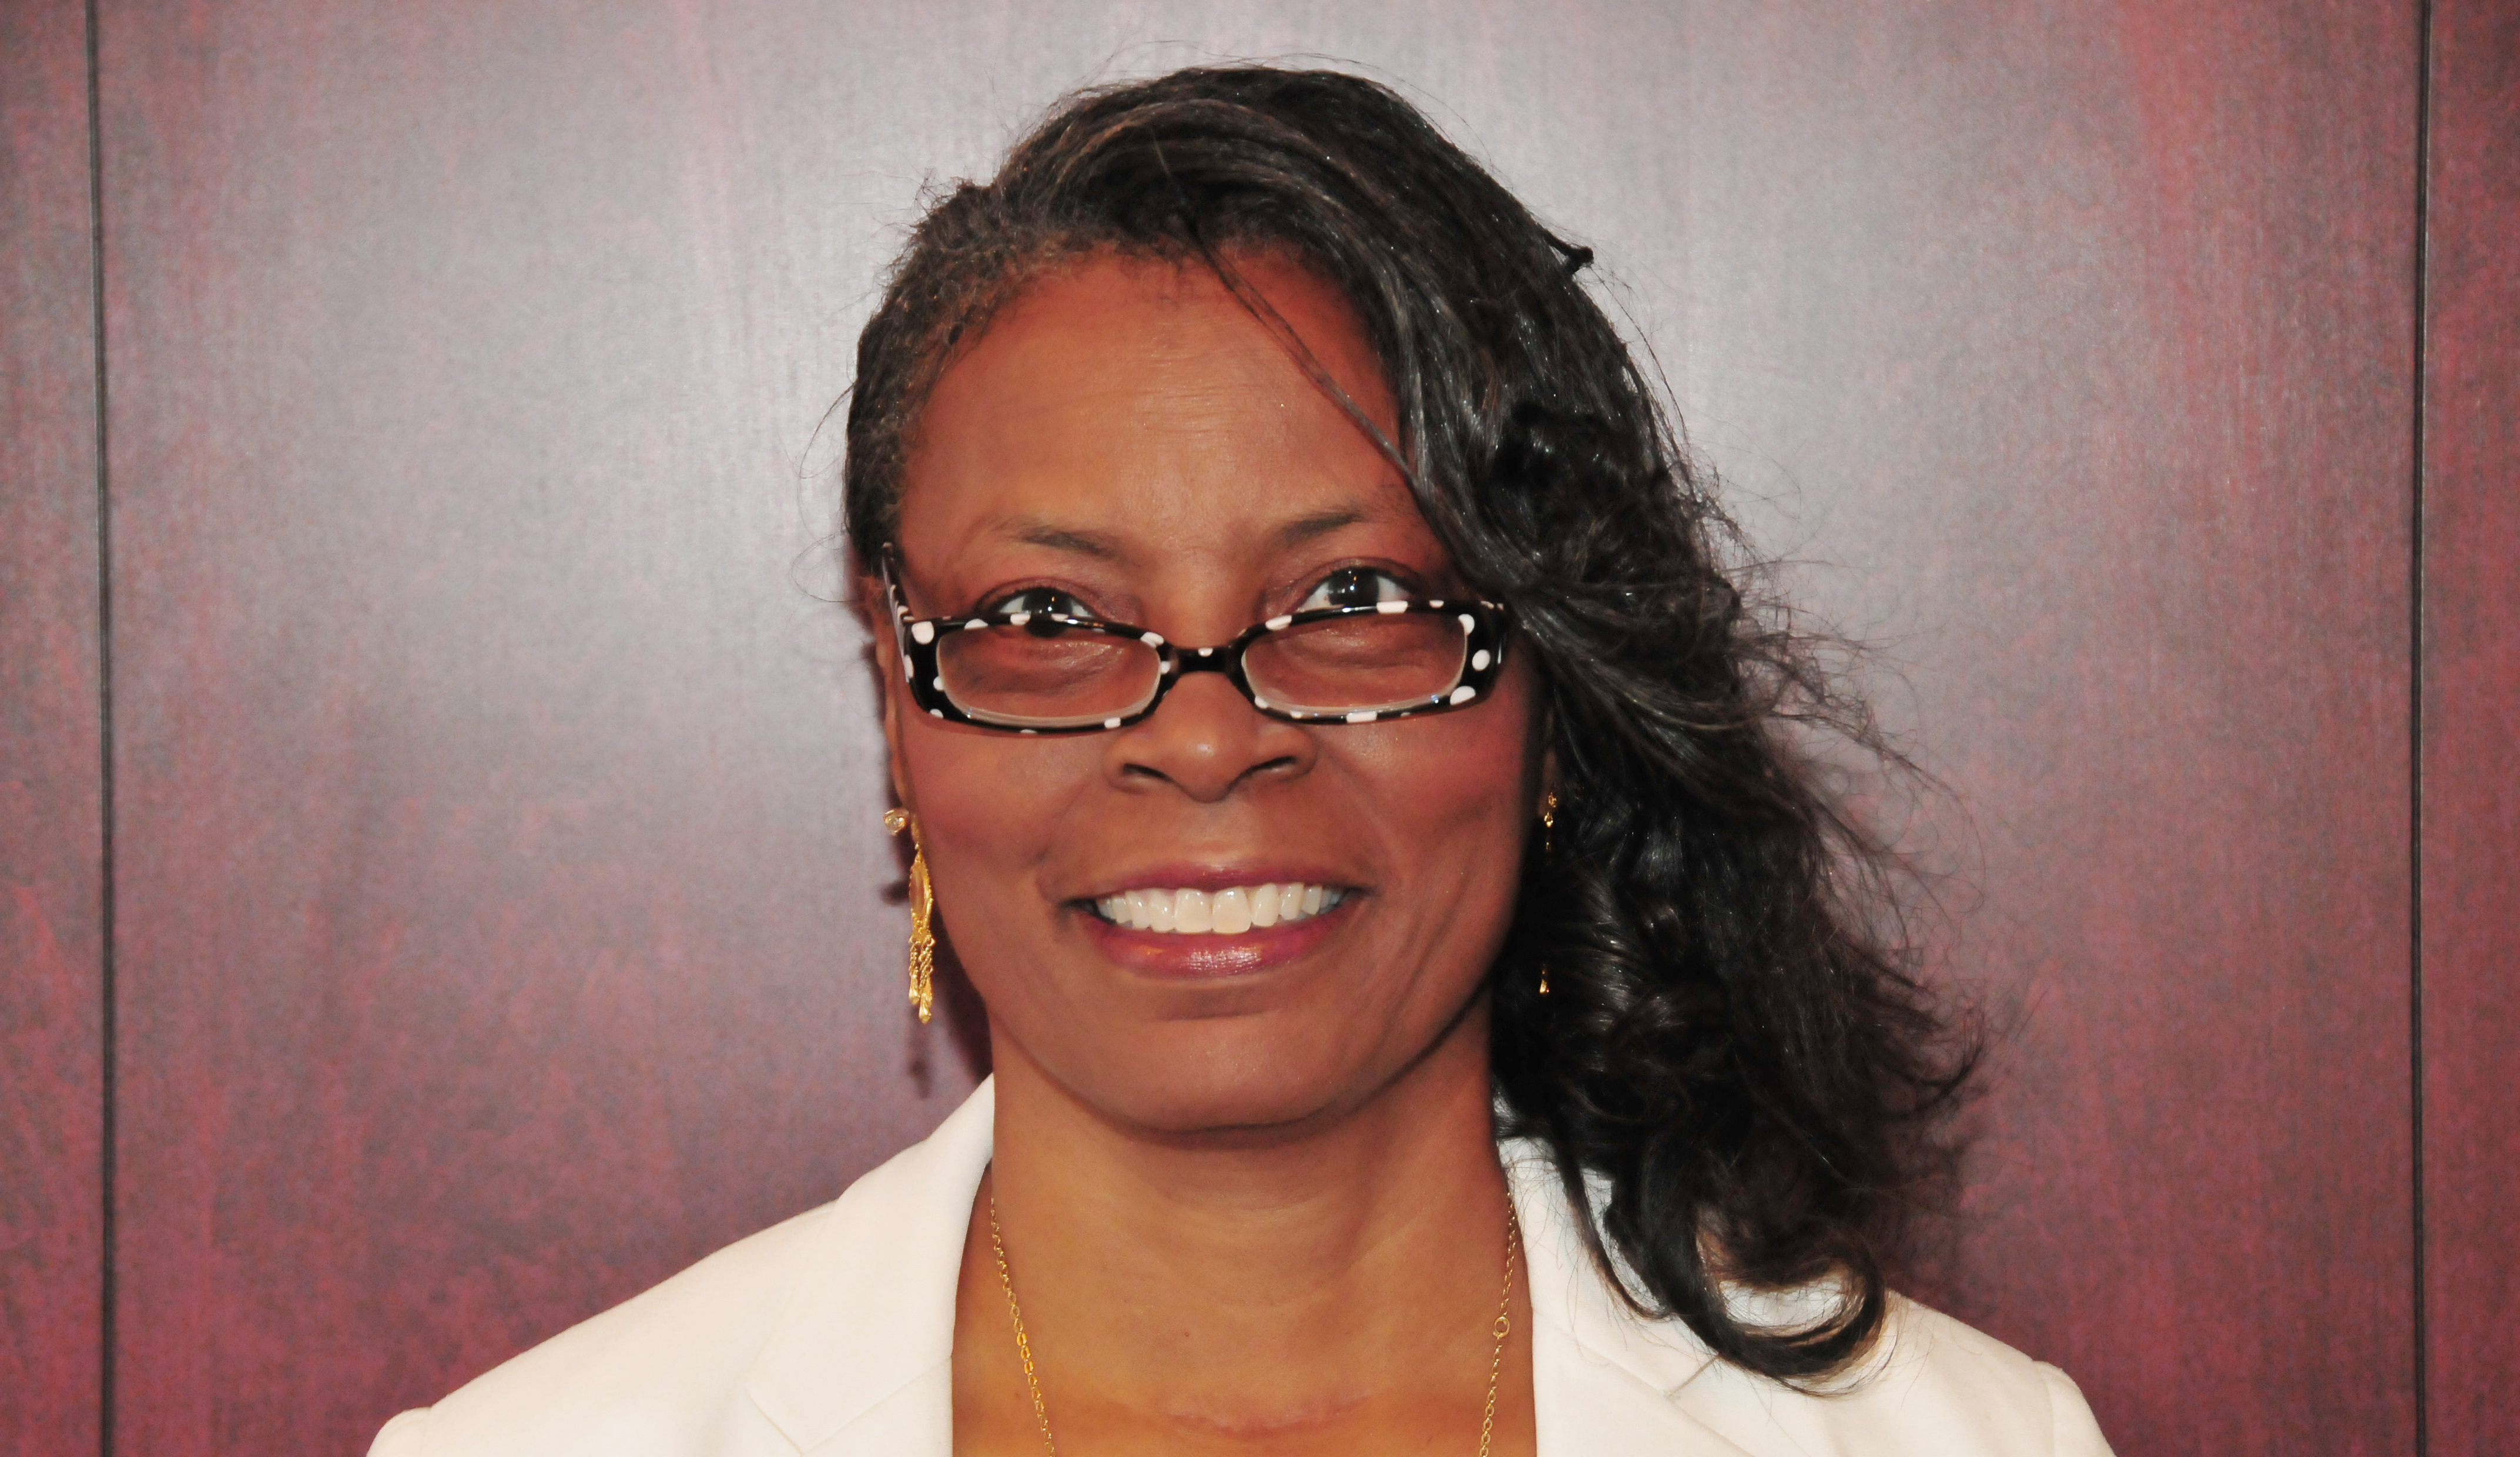 Dr. Debbie Harrington, a University Board of Trustees member and a retired 25-year U.S. Army colonel, has been inducted in the Norfolk State University ROTC Hall of Fame.